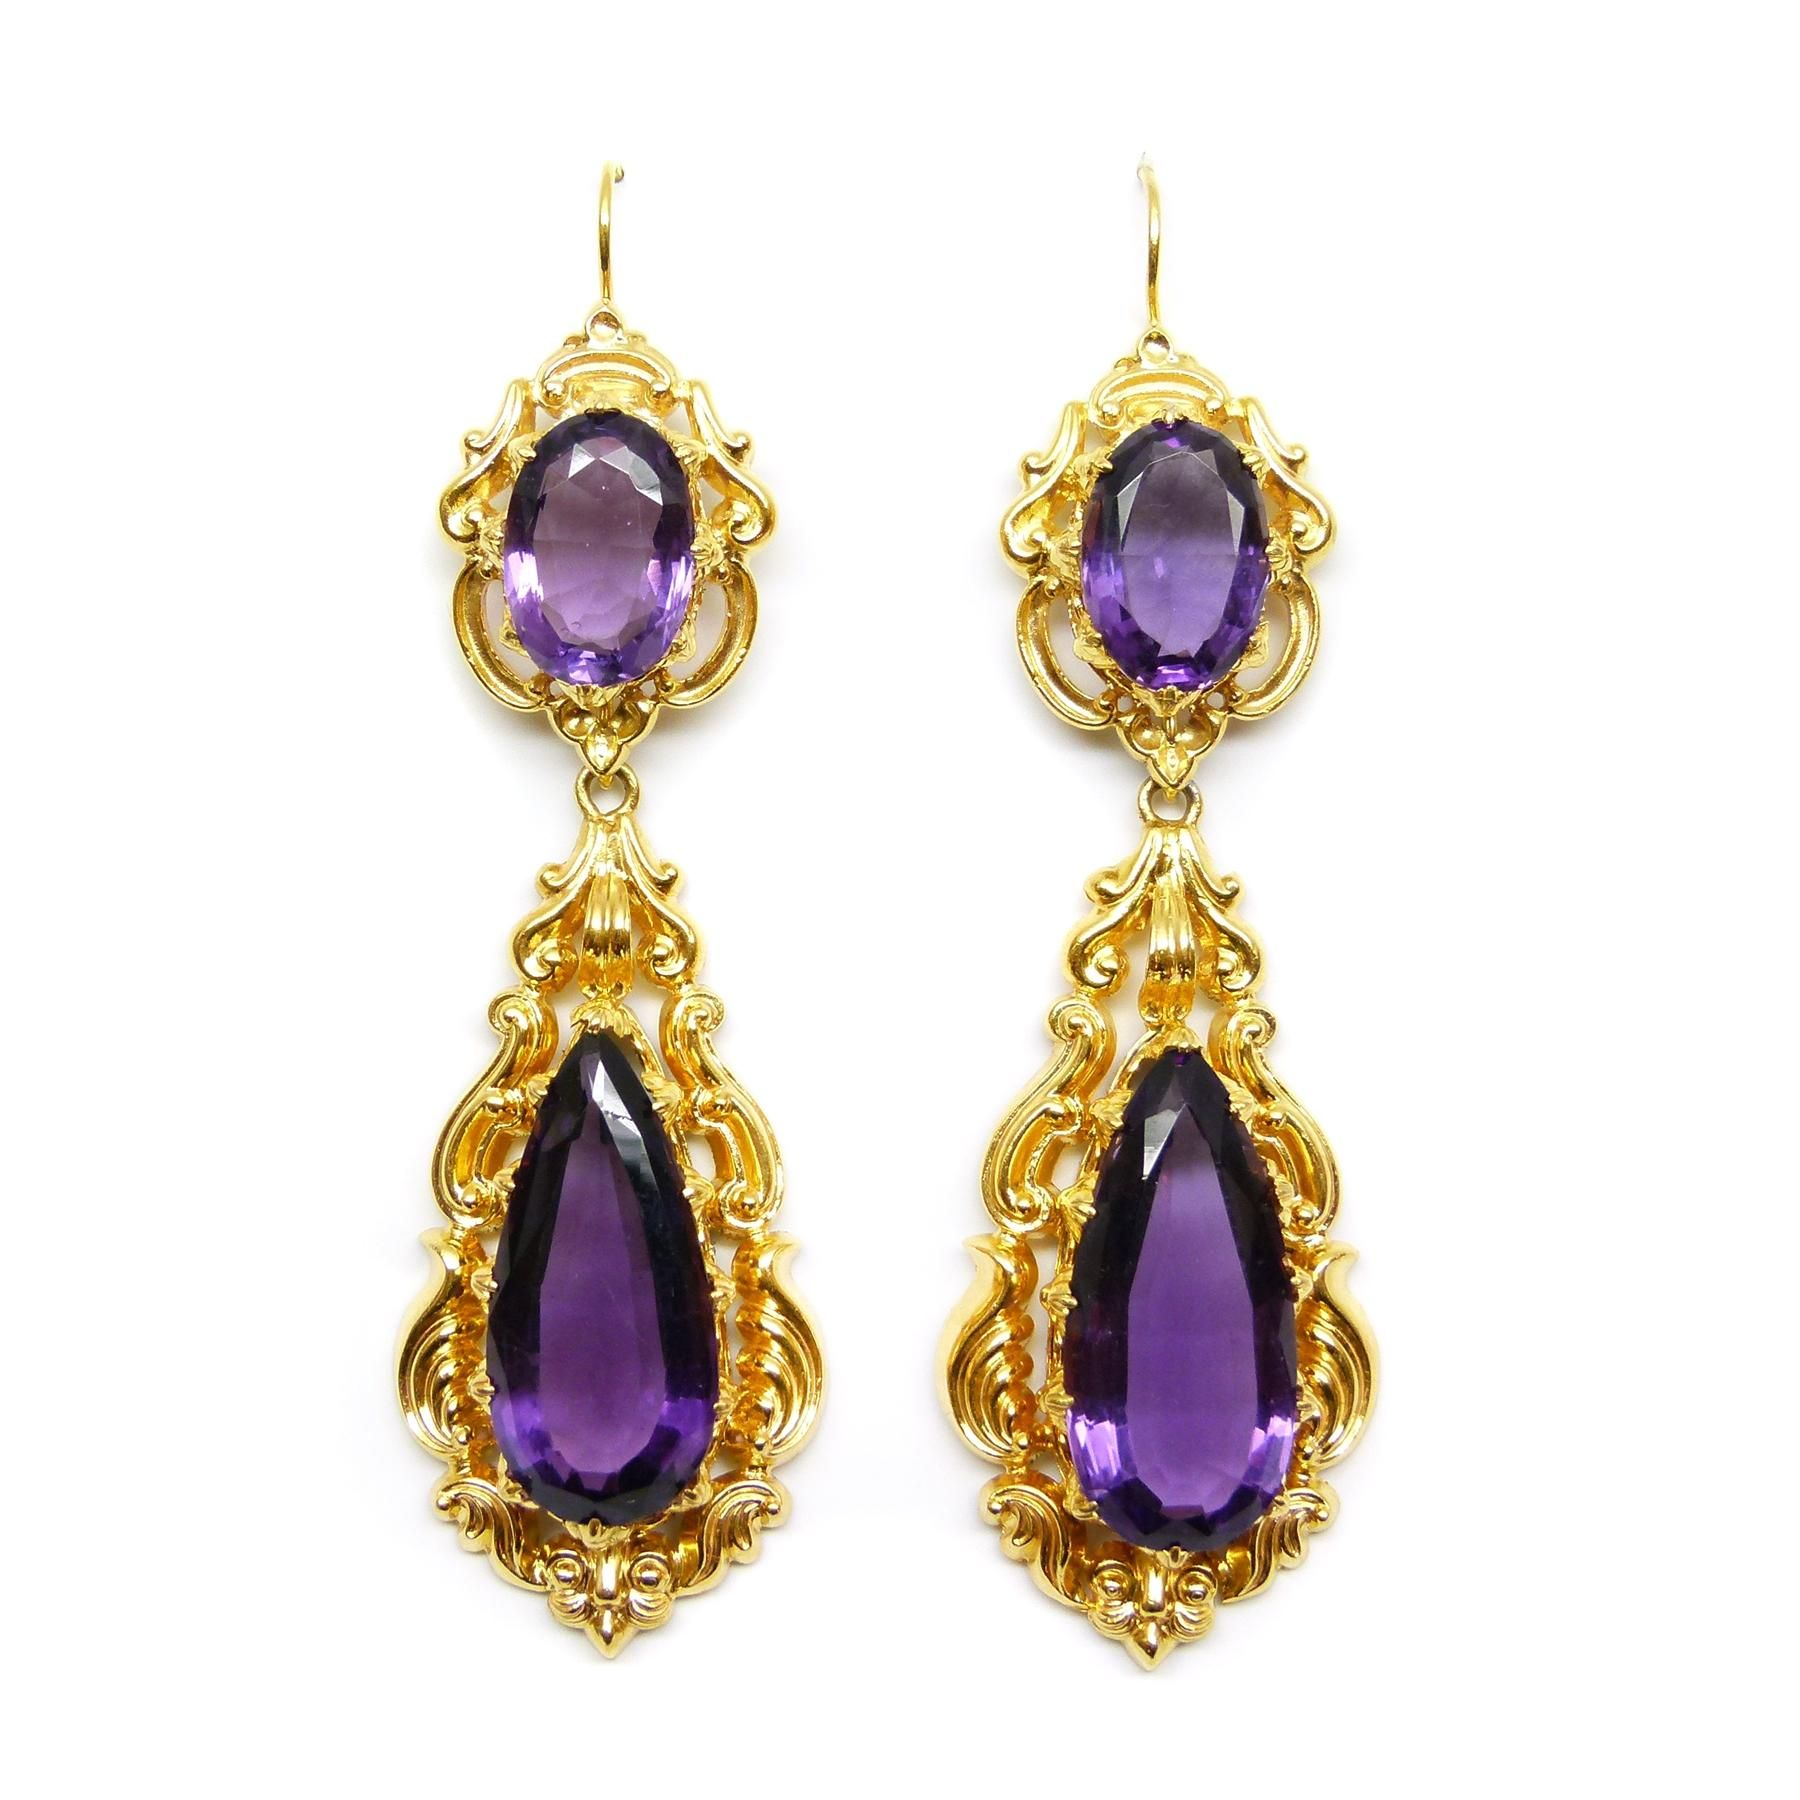 Midvictorian amethyst and gold pendant earrings english c